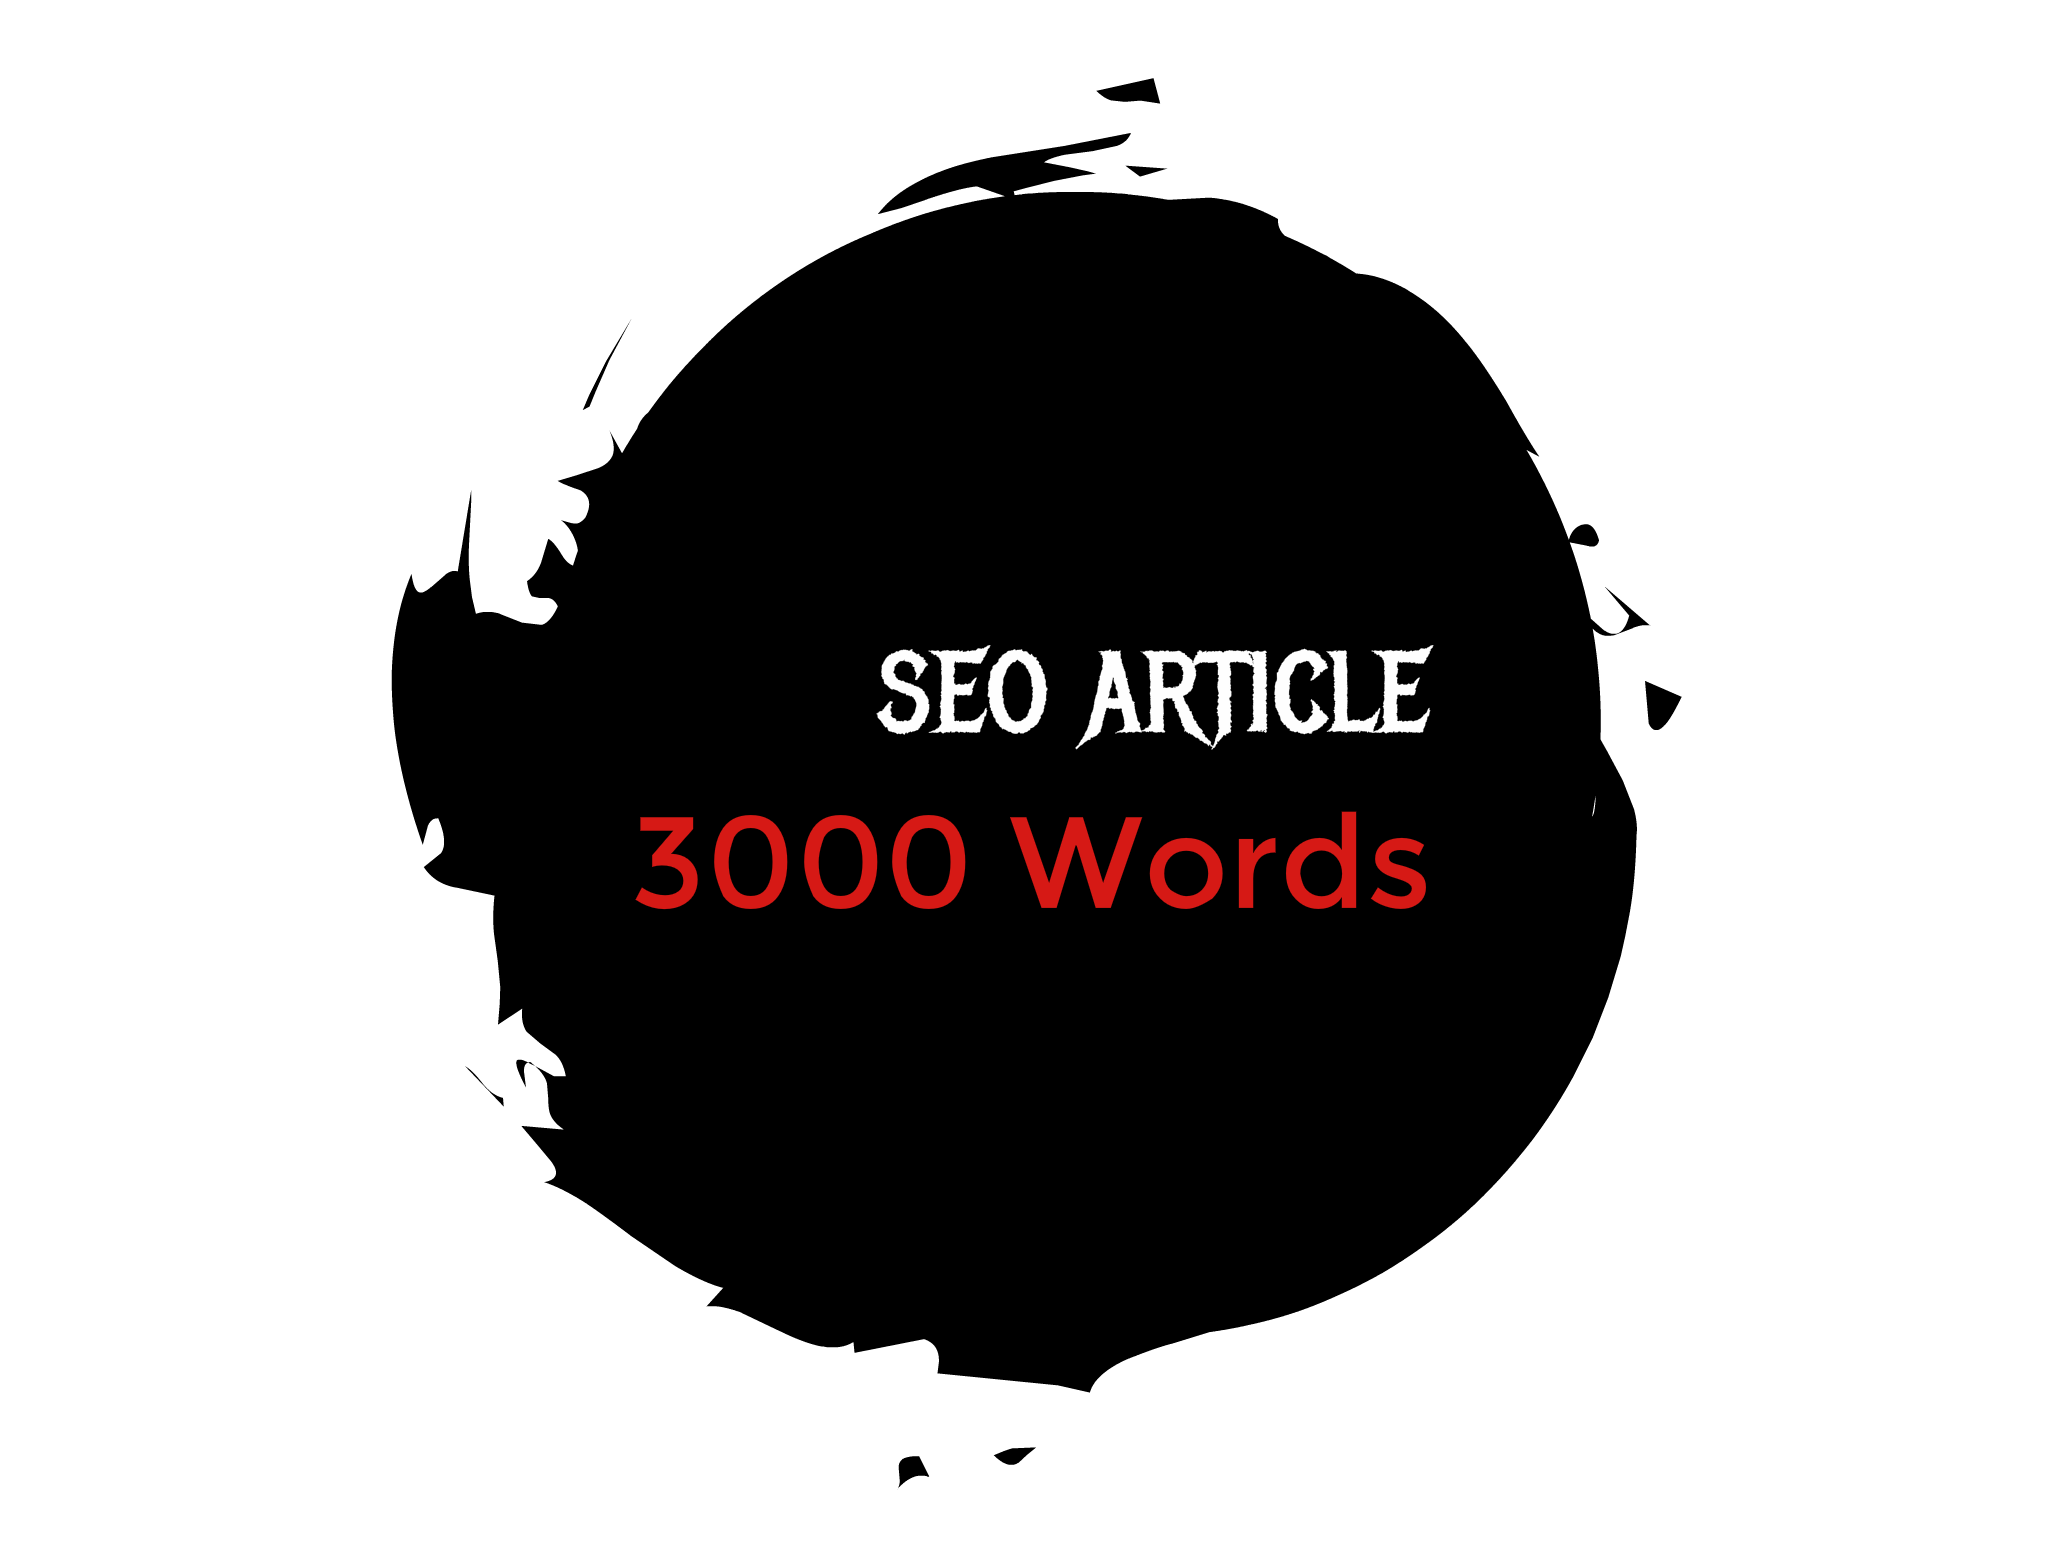 SEO Article 3000 Words